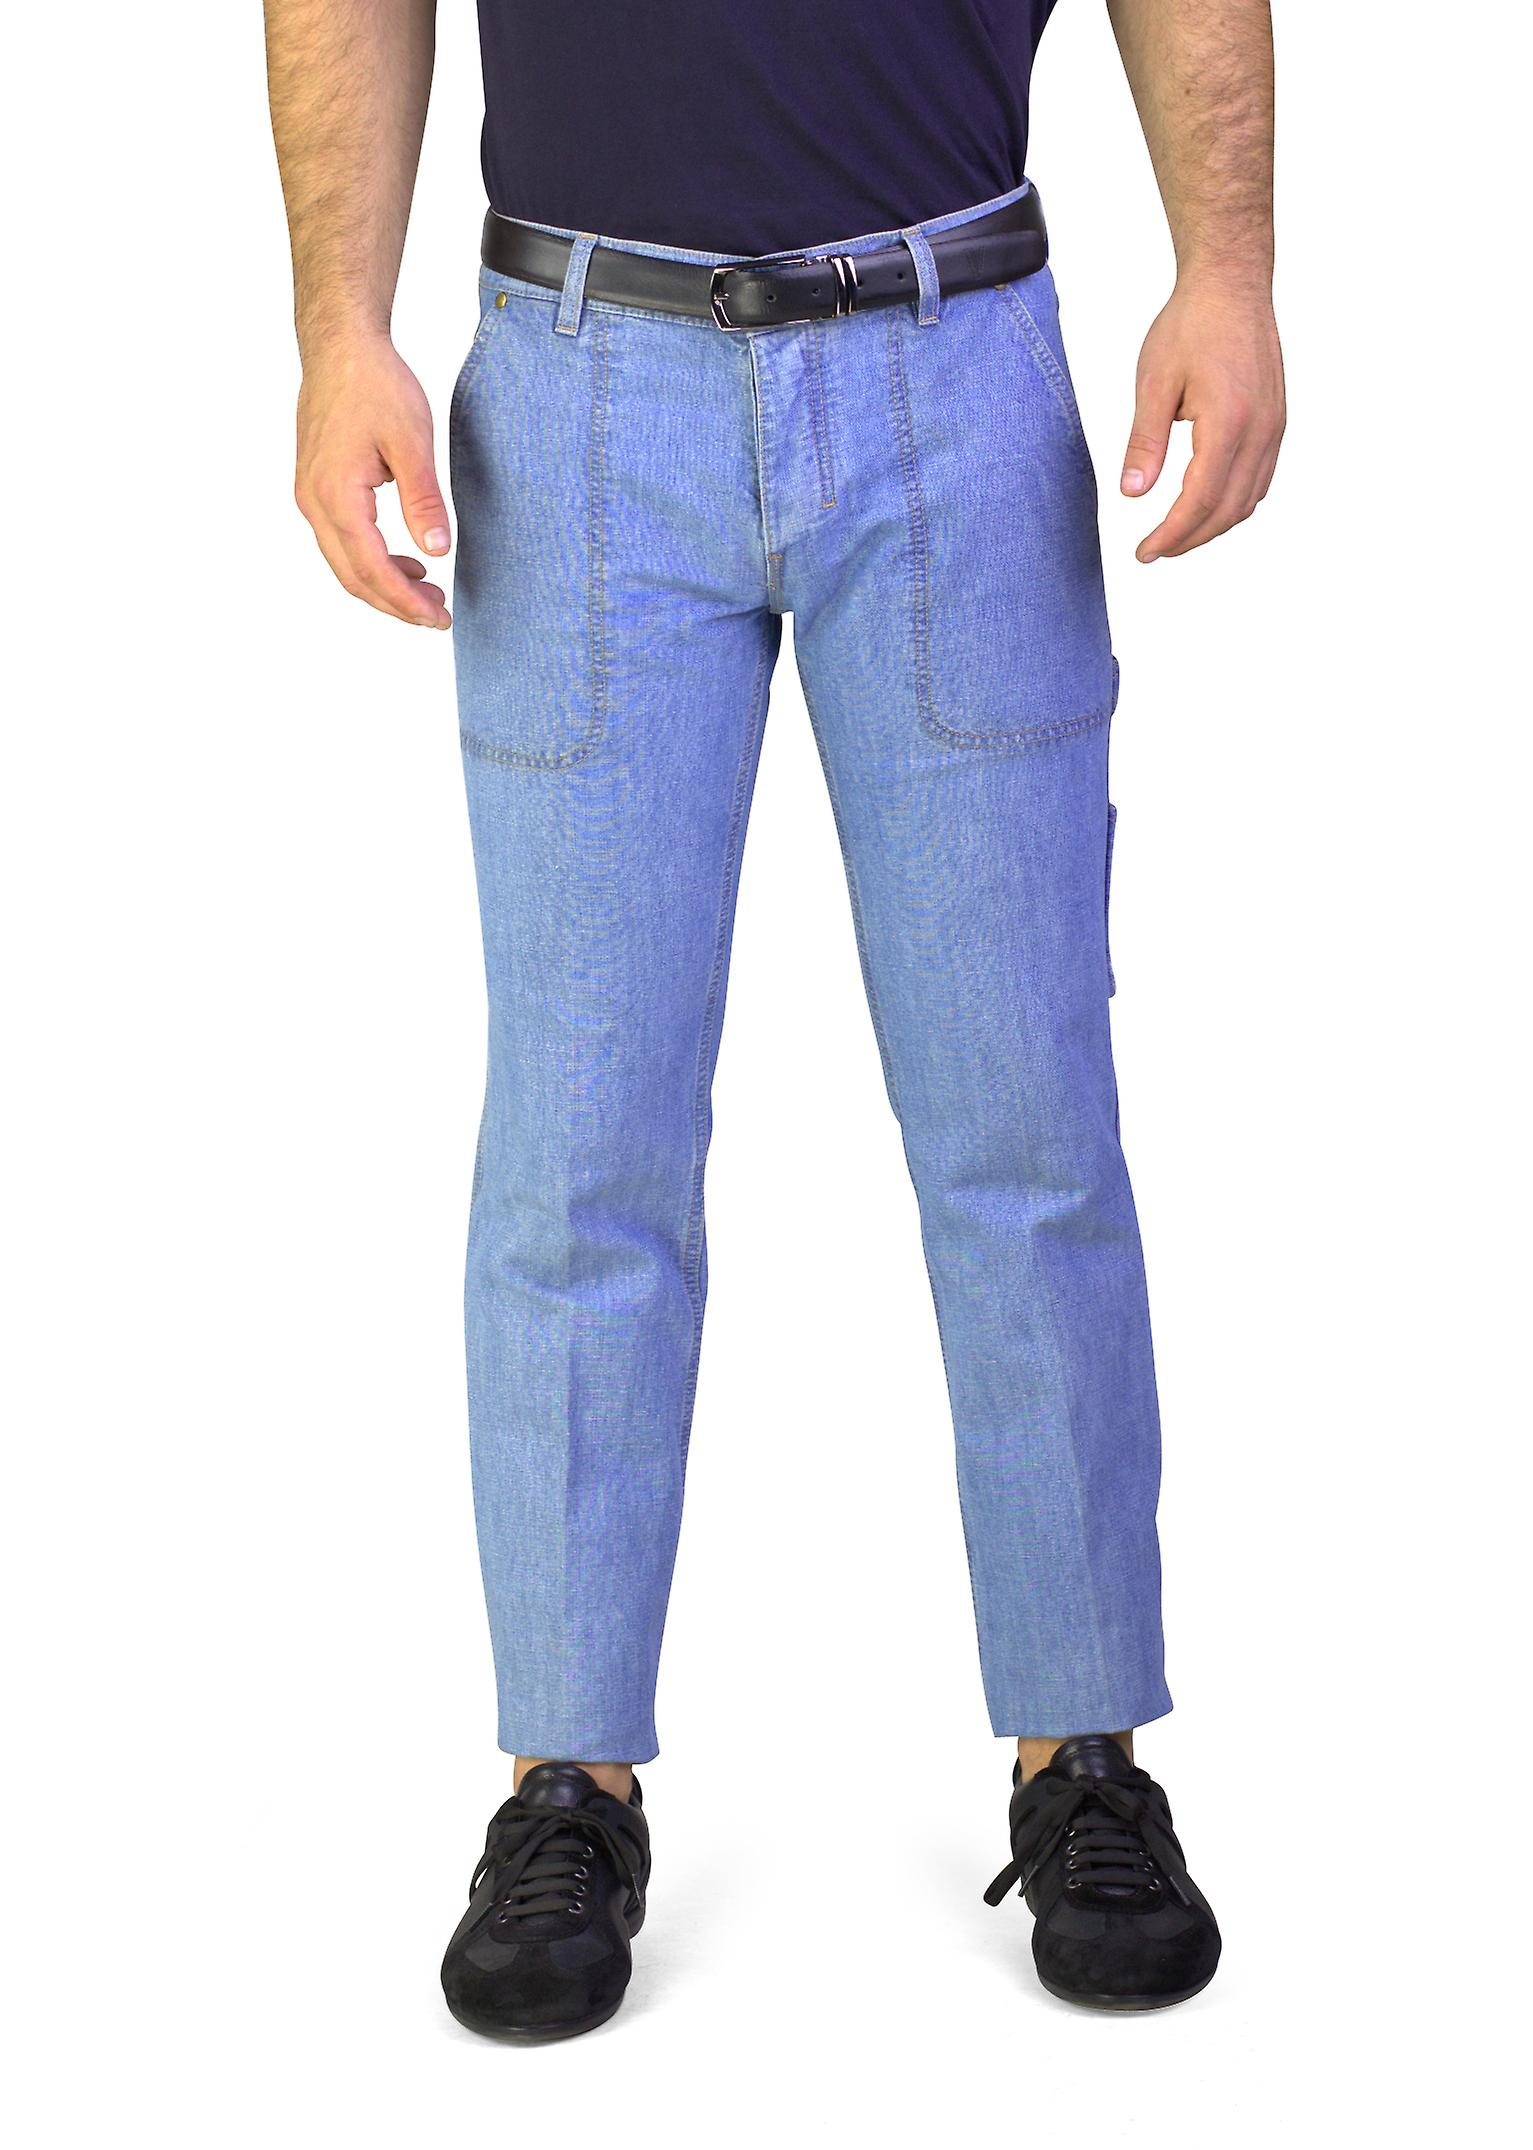 Yves Saint Laurent Men's Utility Bootcut Jeans Light Blue